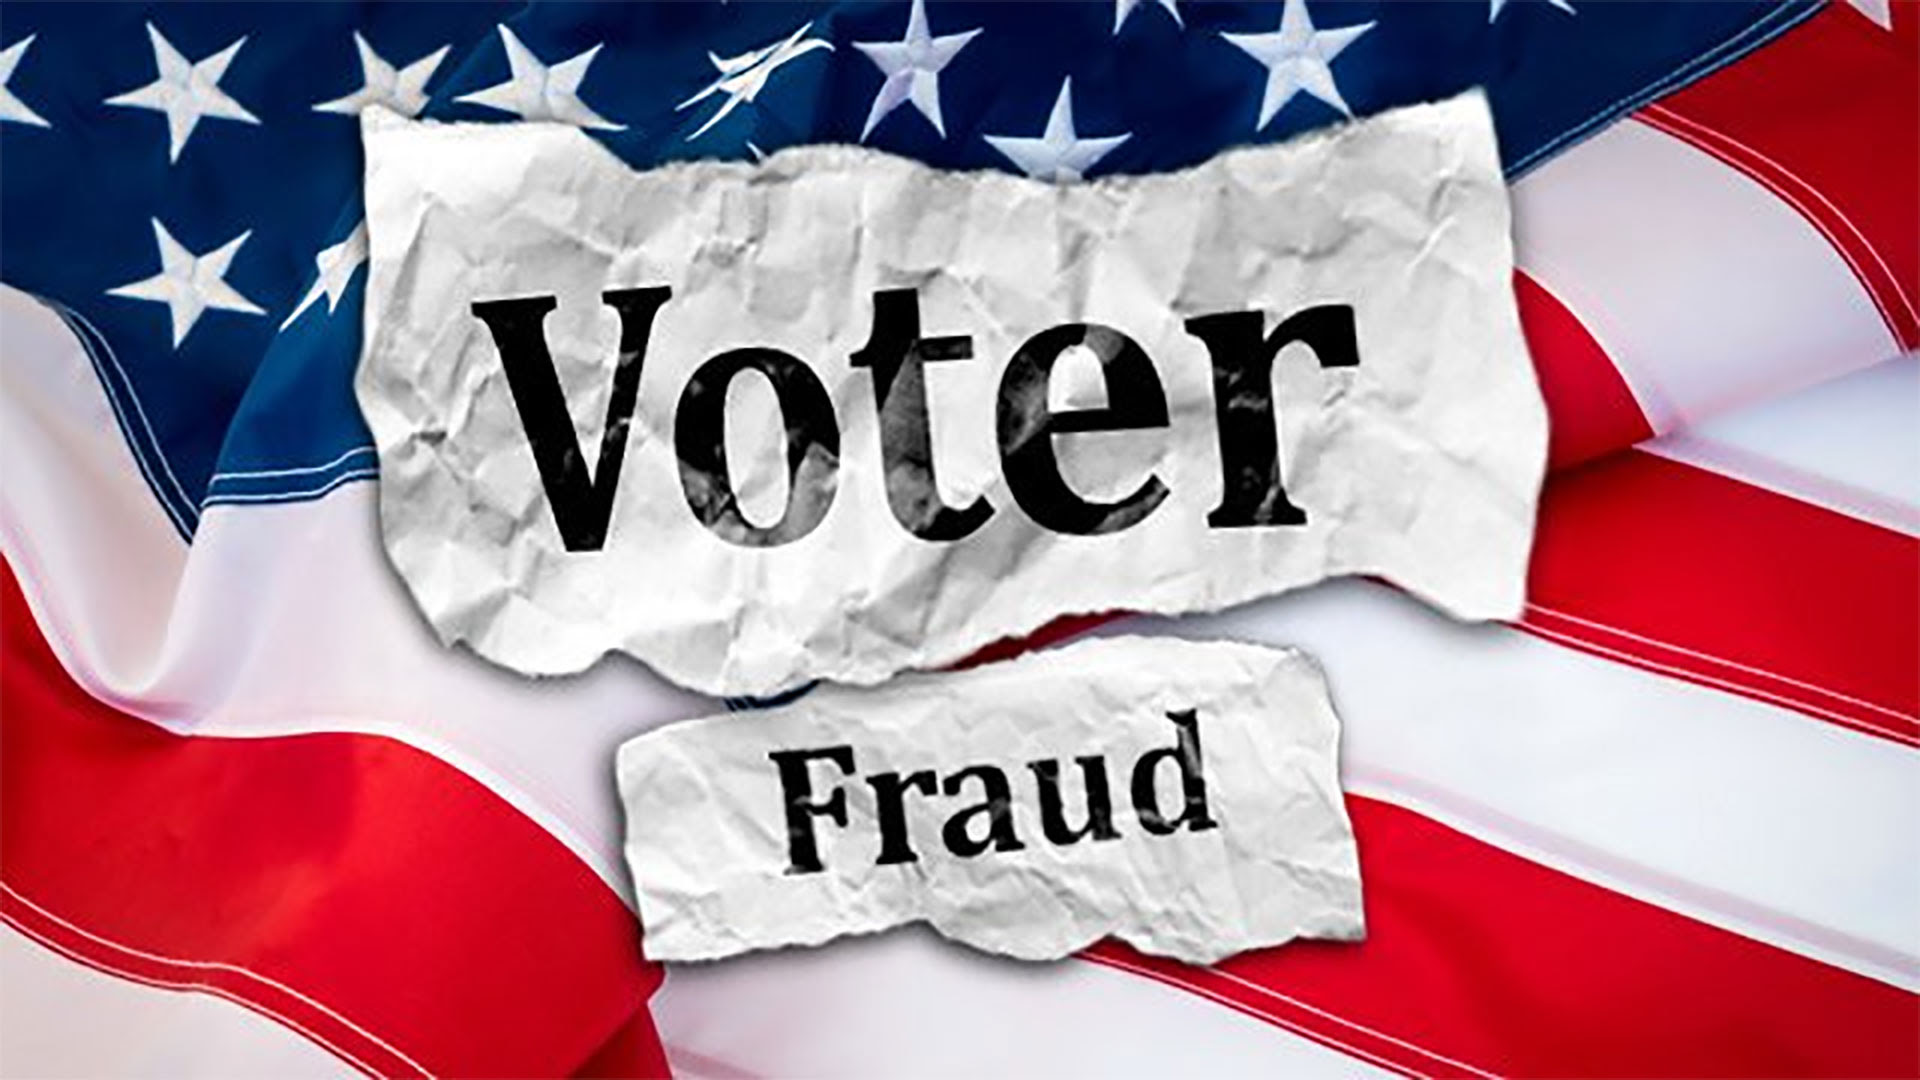 The Institutionalization of Election Fraud ?u=https%3A%2F%2Fredice.tv%2Fa%2Fi%2Fn%2F20%2F11092138-voterfraud